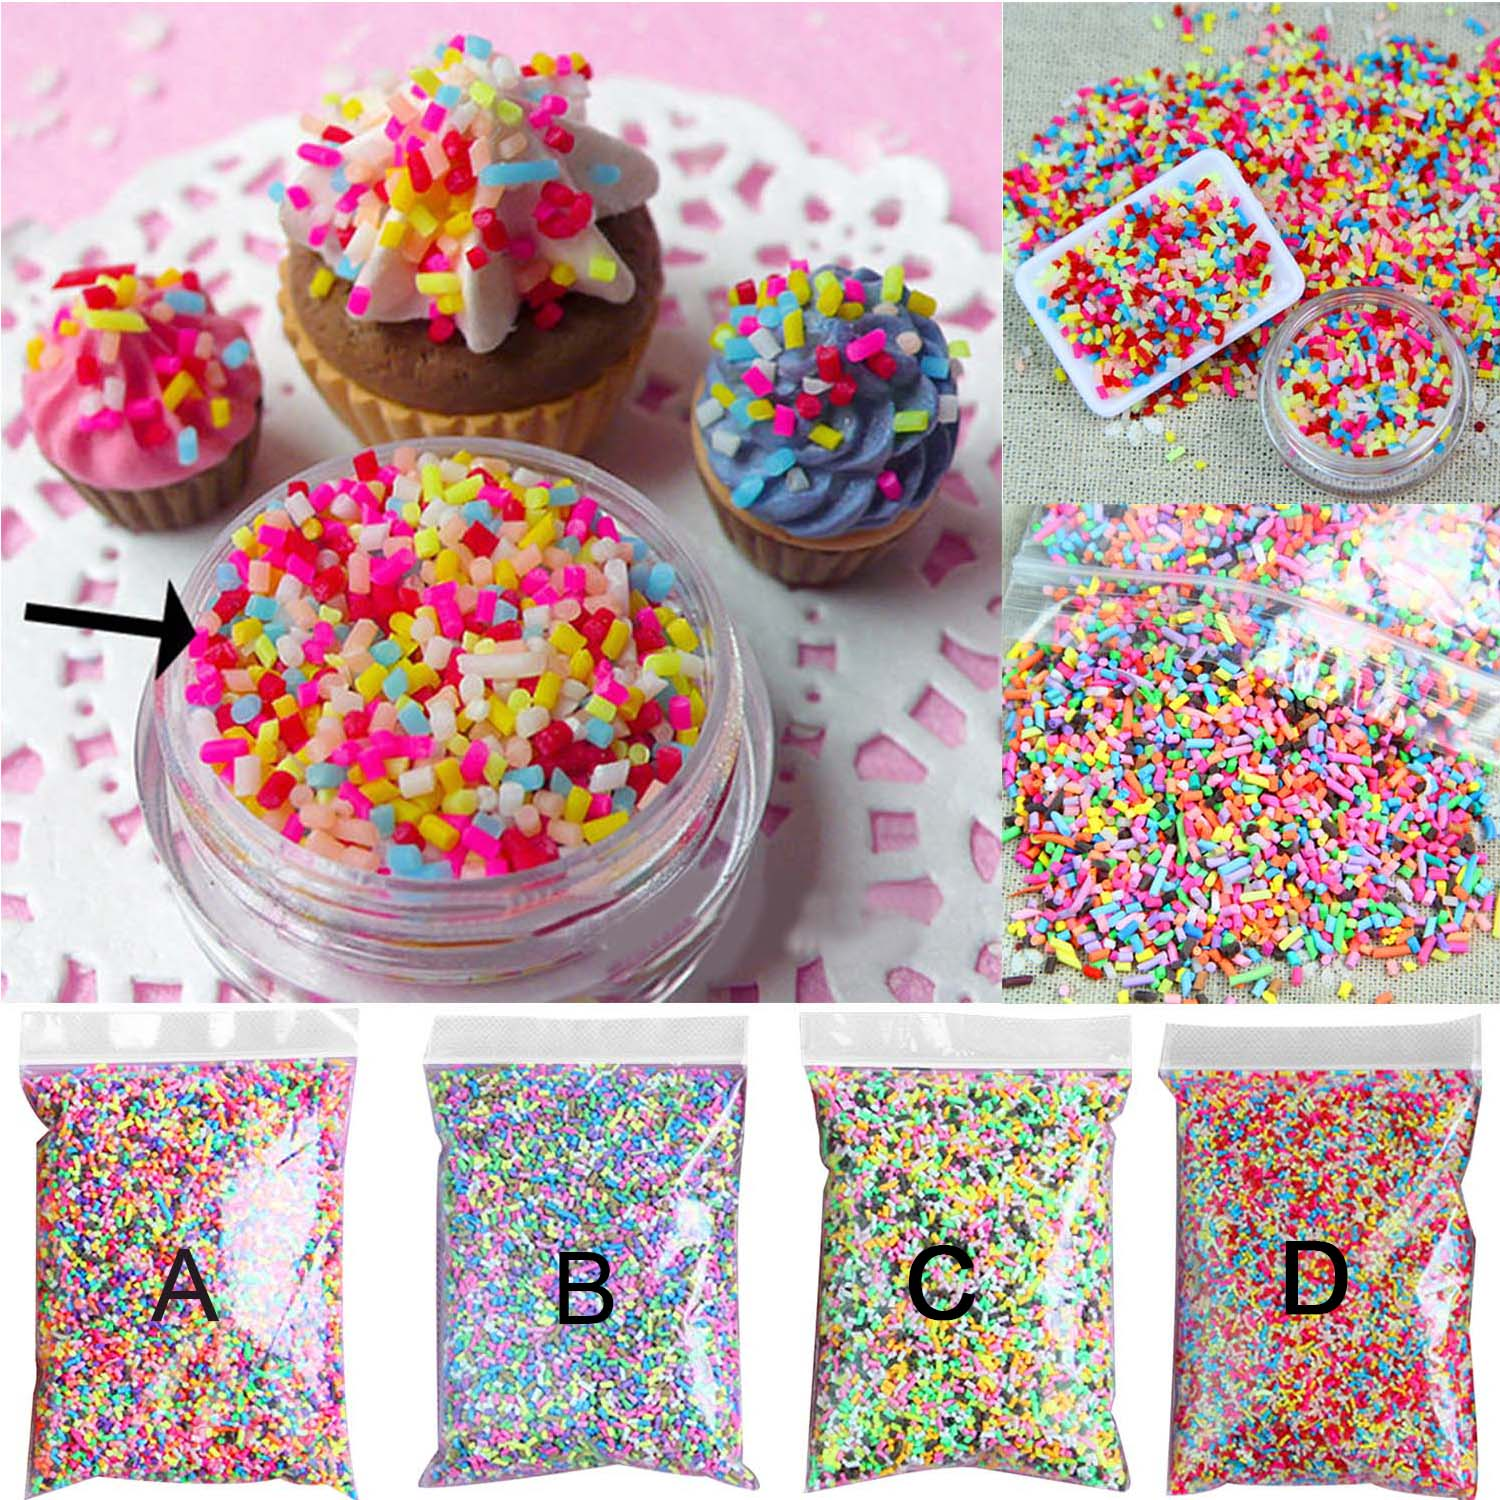 100g DIY Polymer Clay Colorful Fake Candy Sweets Sugar Sprinkles Decorations For Fake Cake Dessert Simulation Food Dollhouse